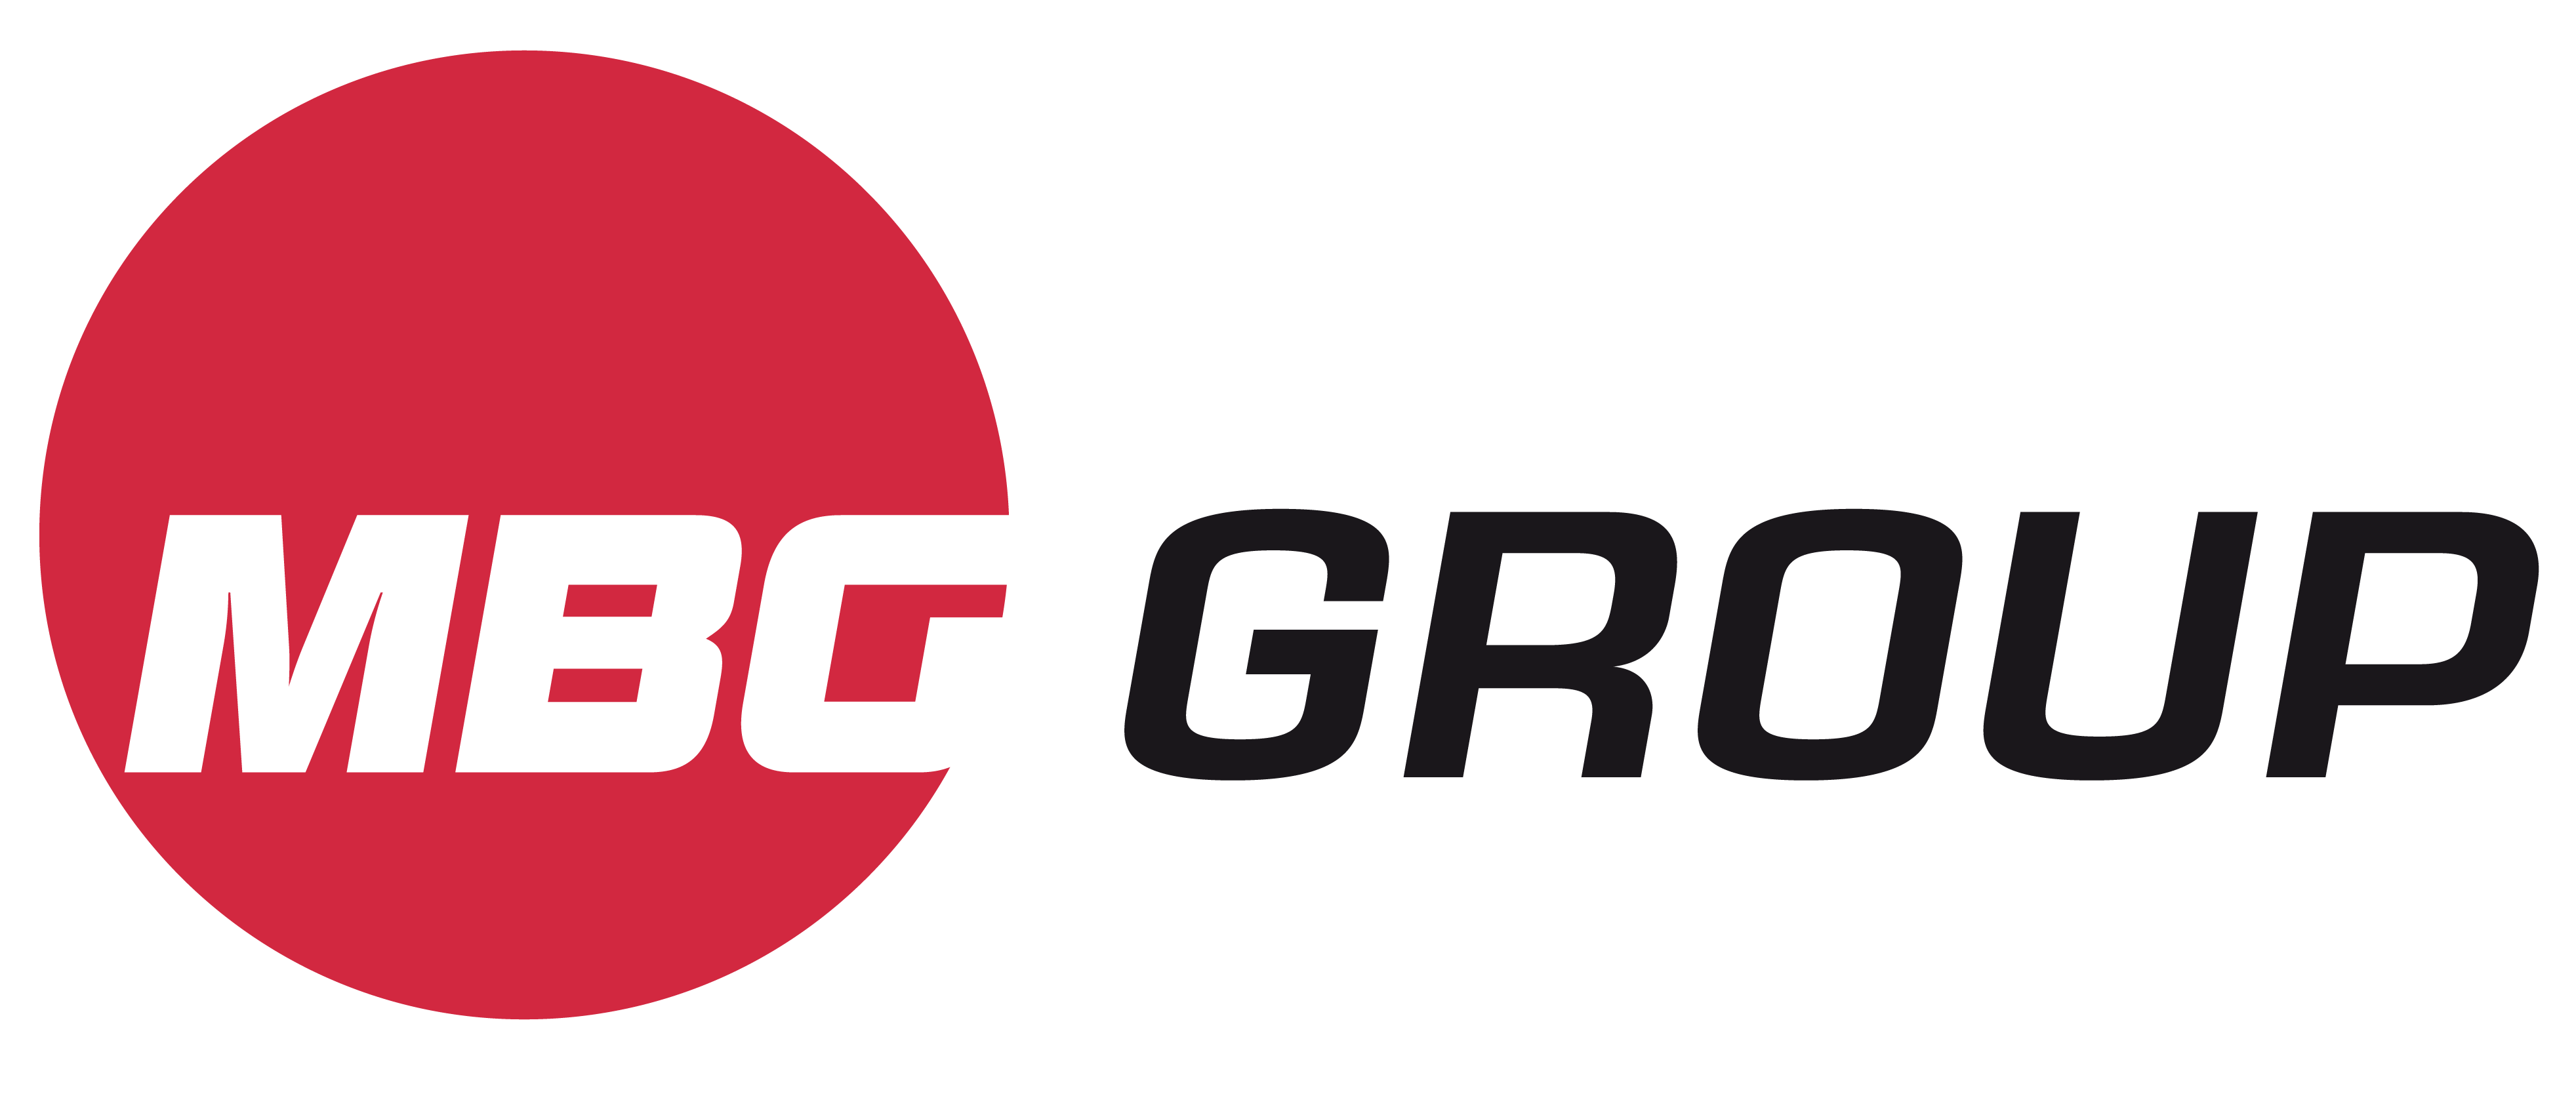 MBG-Gruppe - Wikiwand